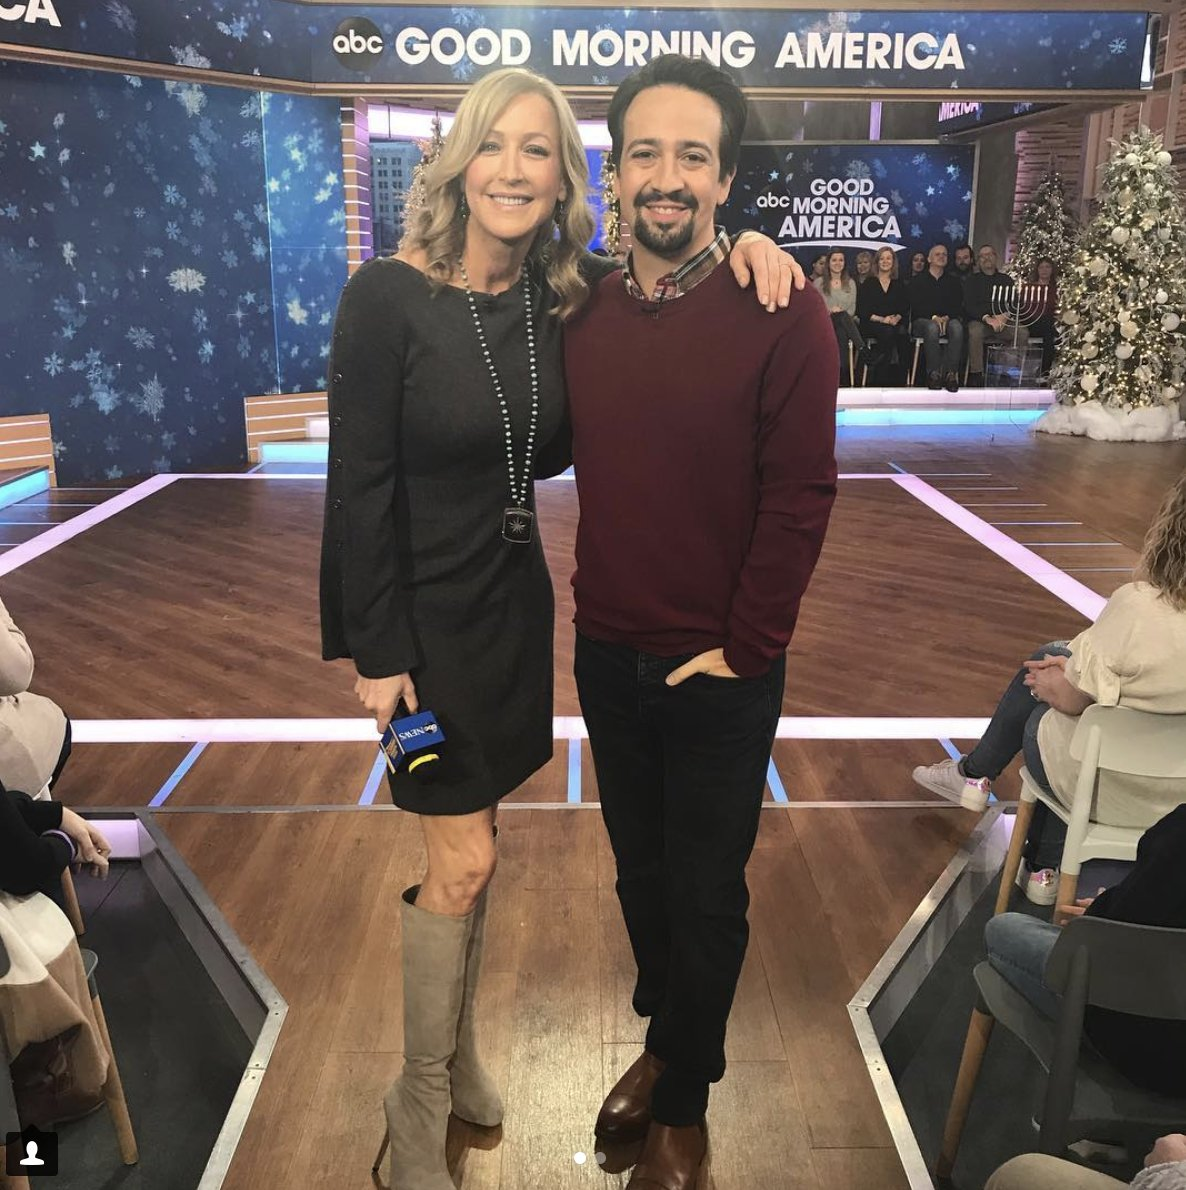 We never throw away our shot to hang with @Lin_Manuel! So great having him here to talk @MaryPoppins and his @HamiltonMusical Puerto Rico debut 🌟